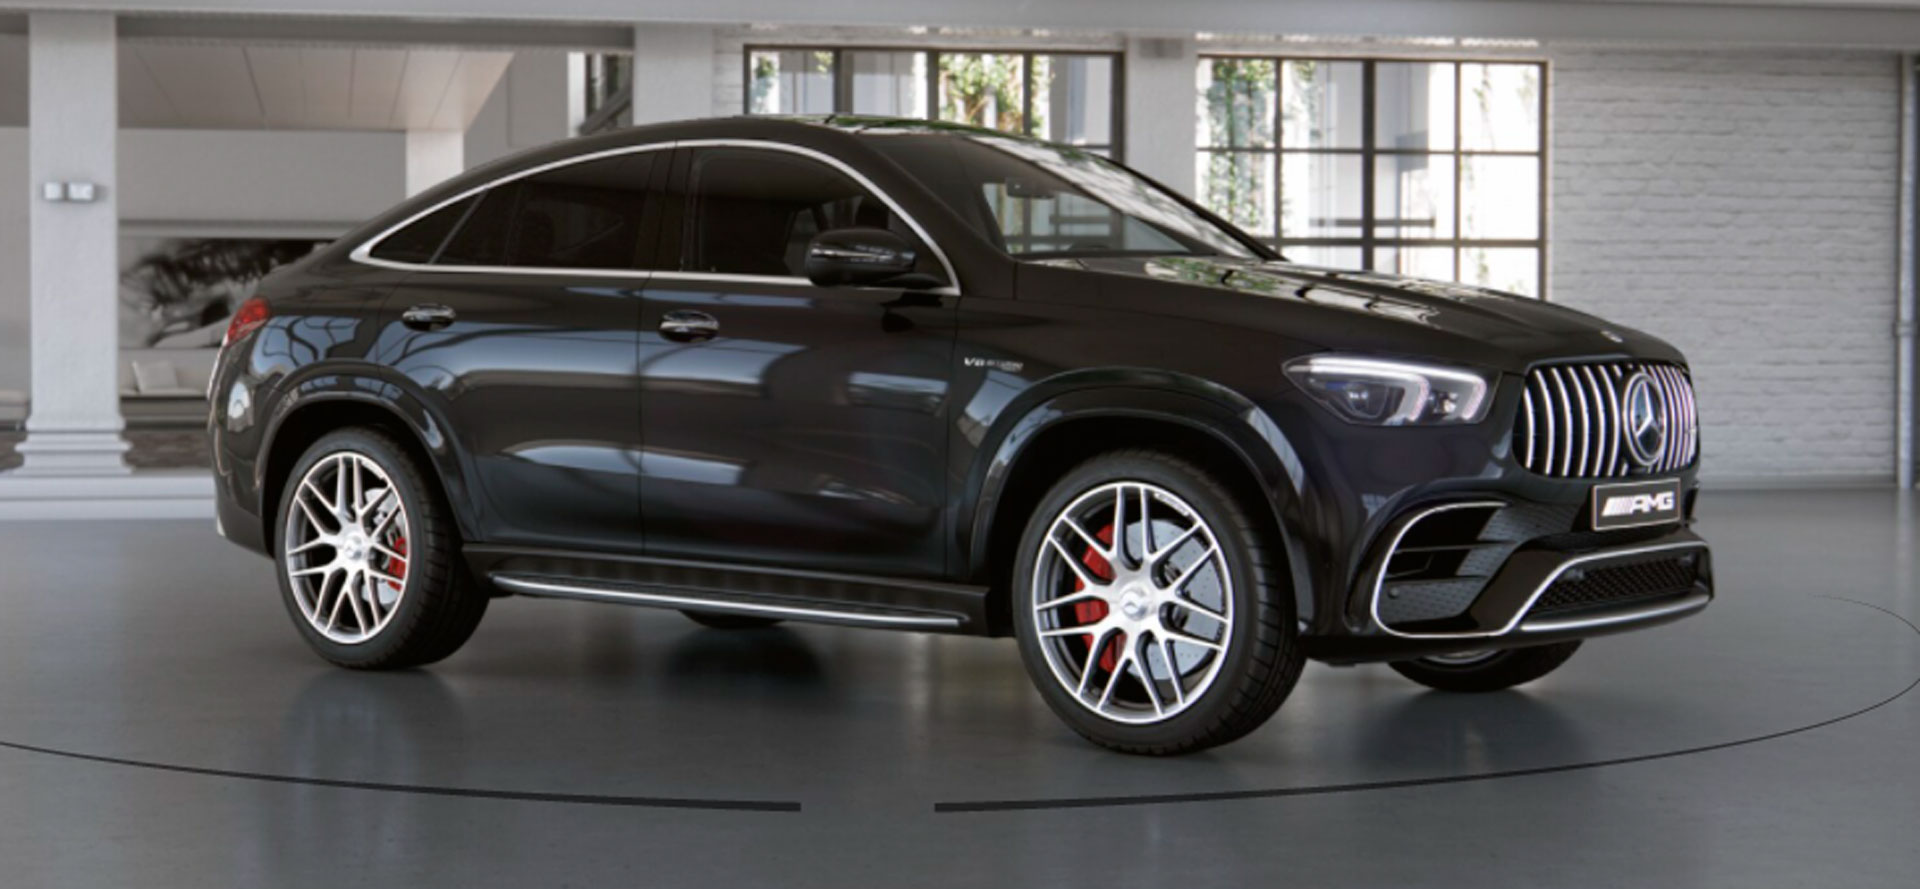 Mercedes-AMG GLE 53 4 matic+ Coupe фото 4